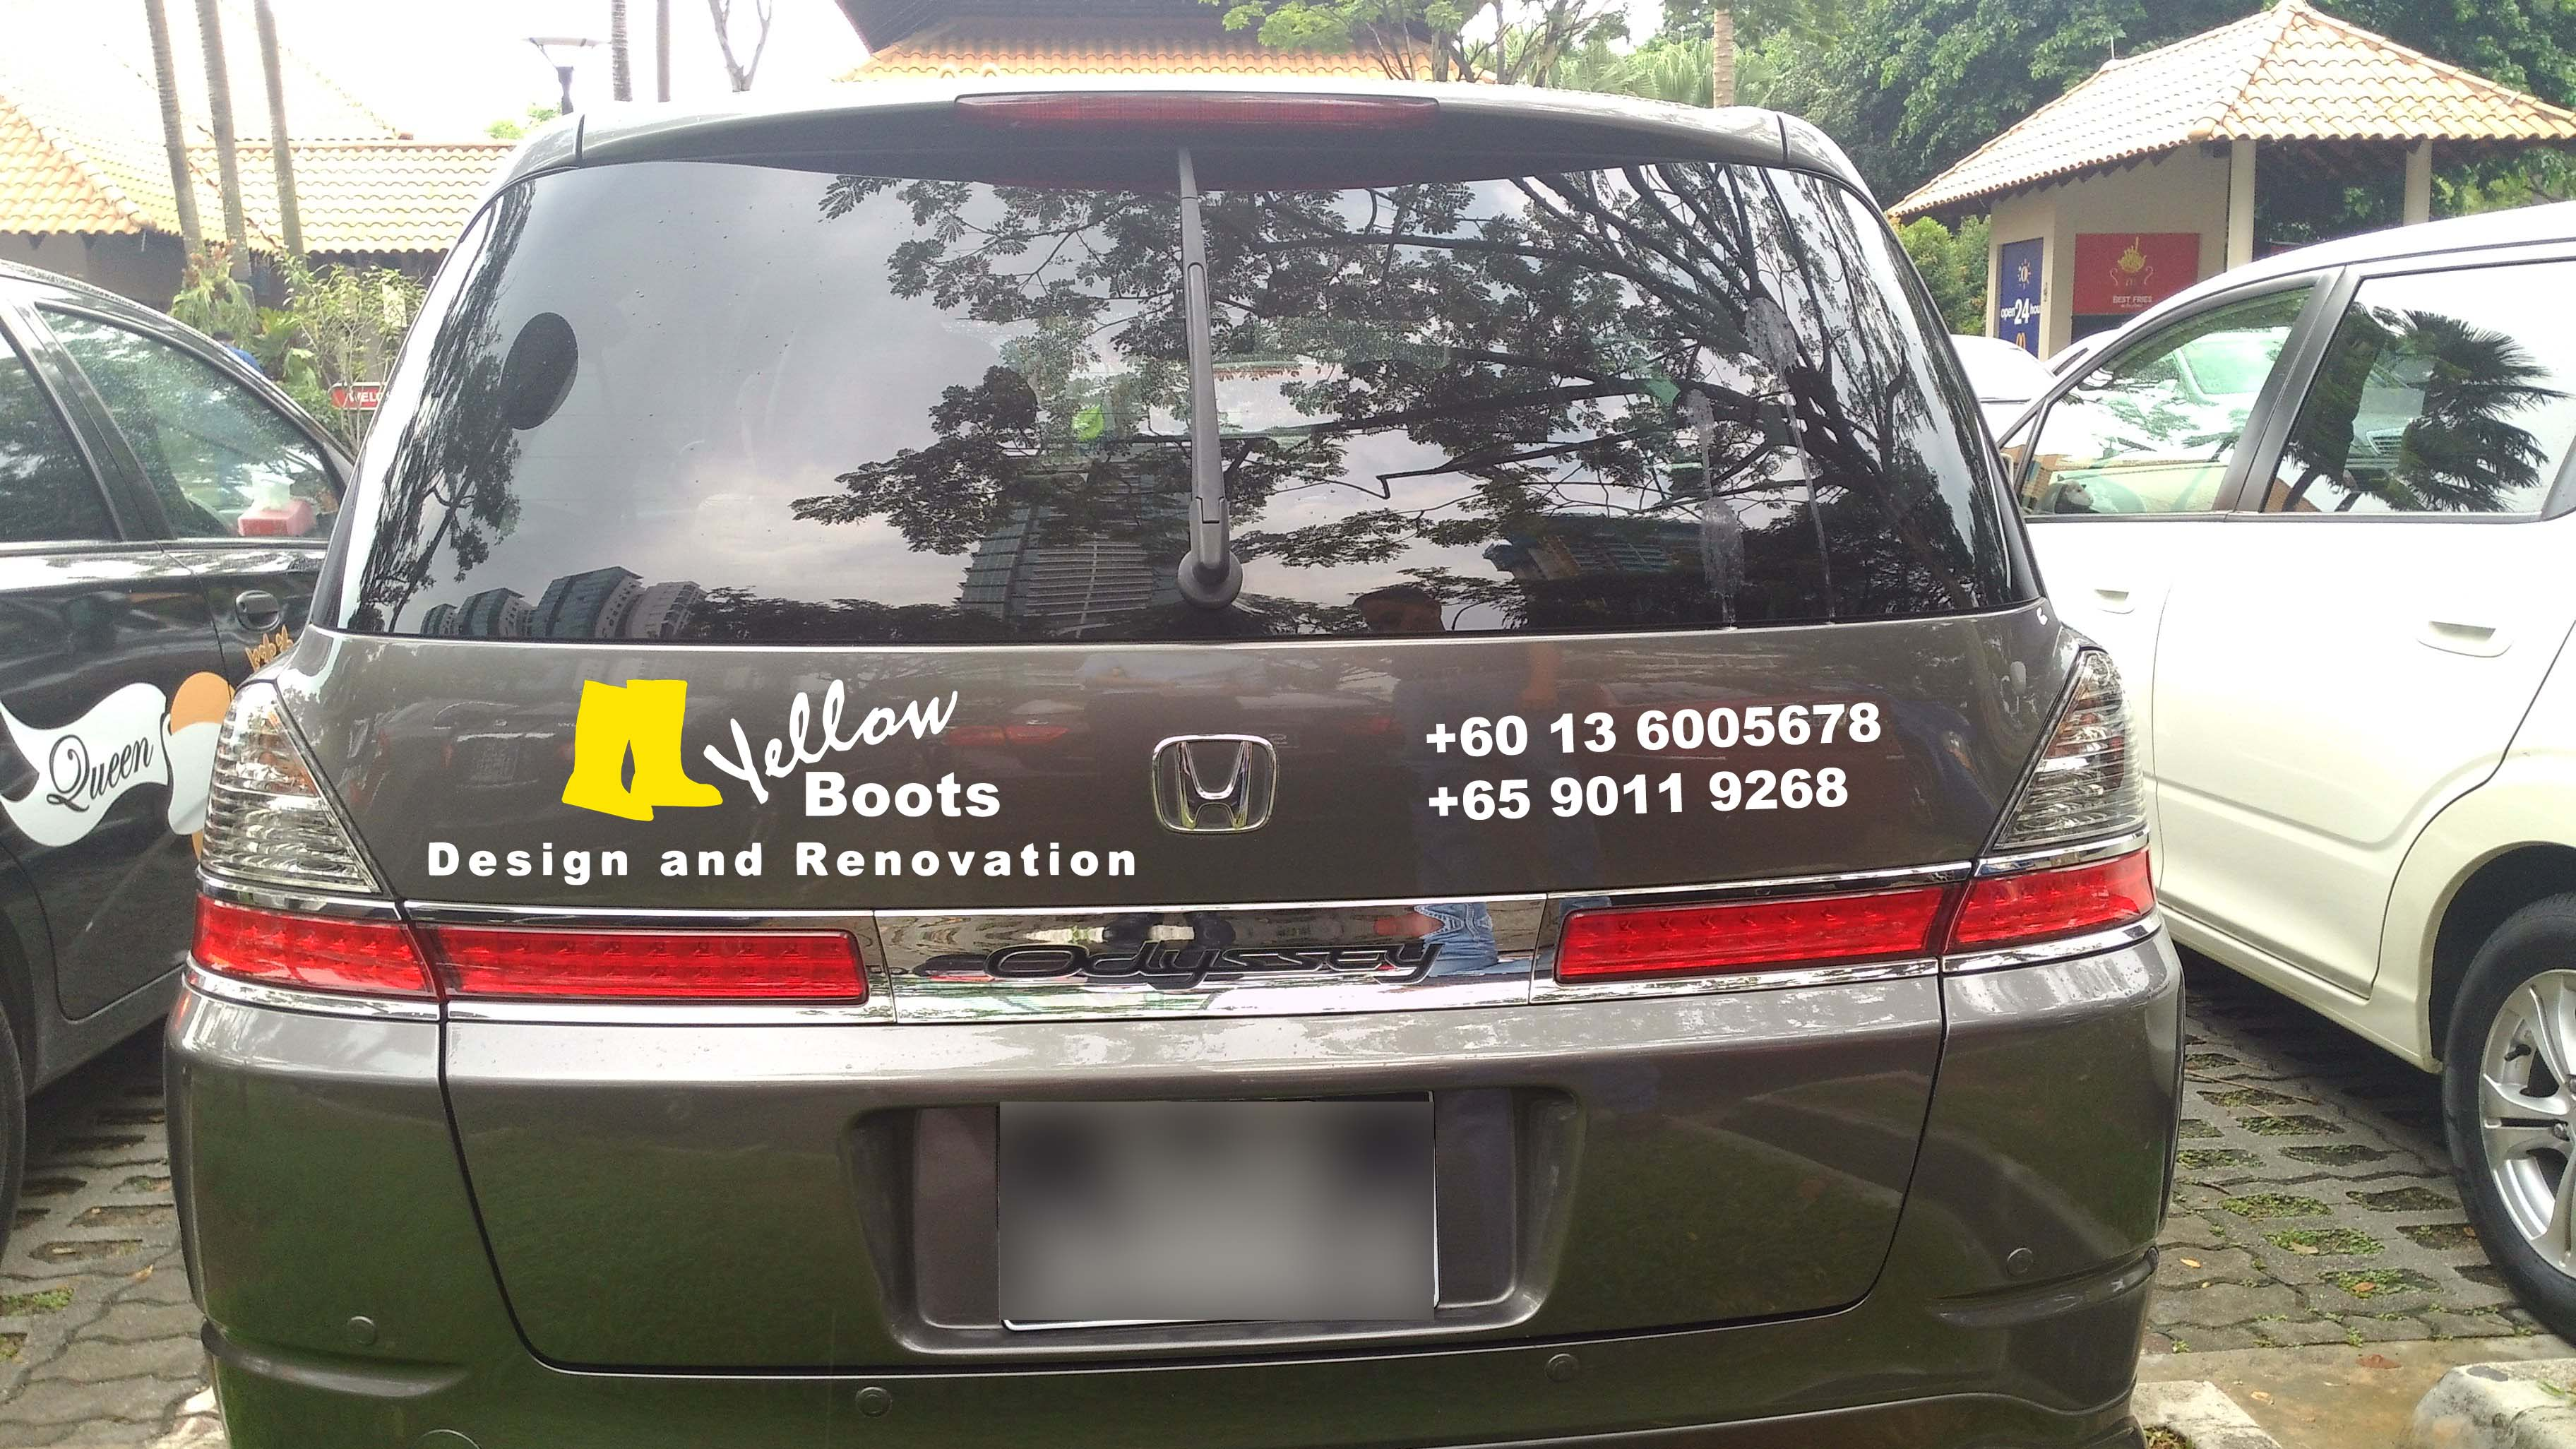 Customise Decal